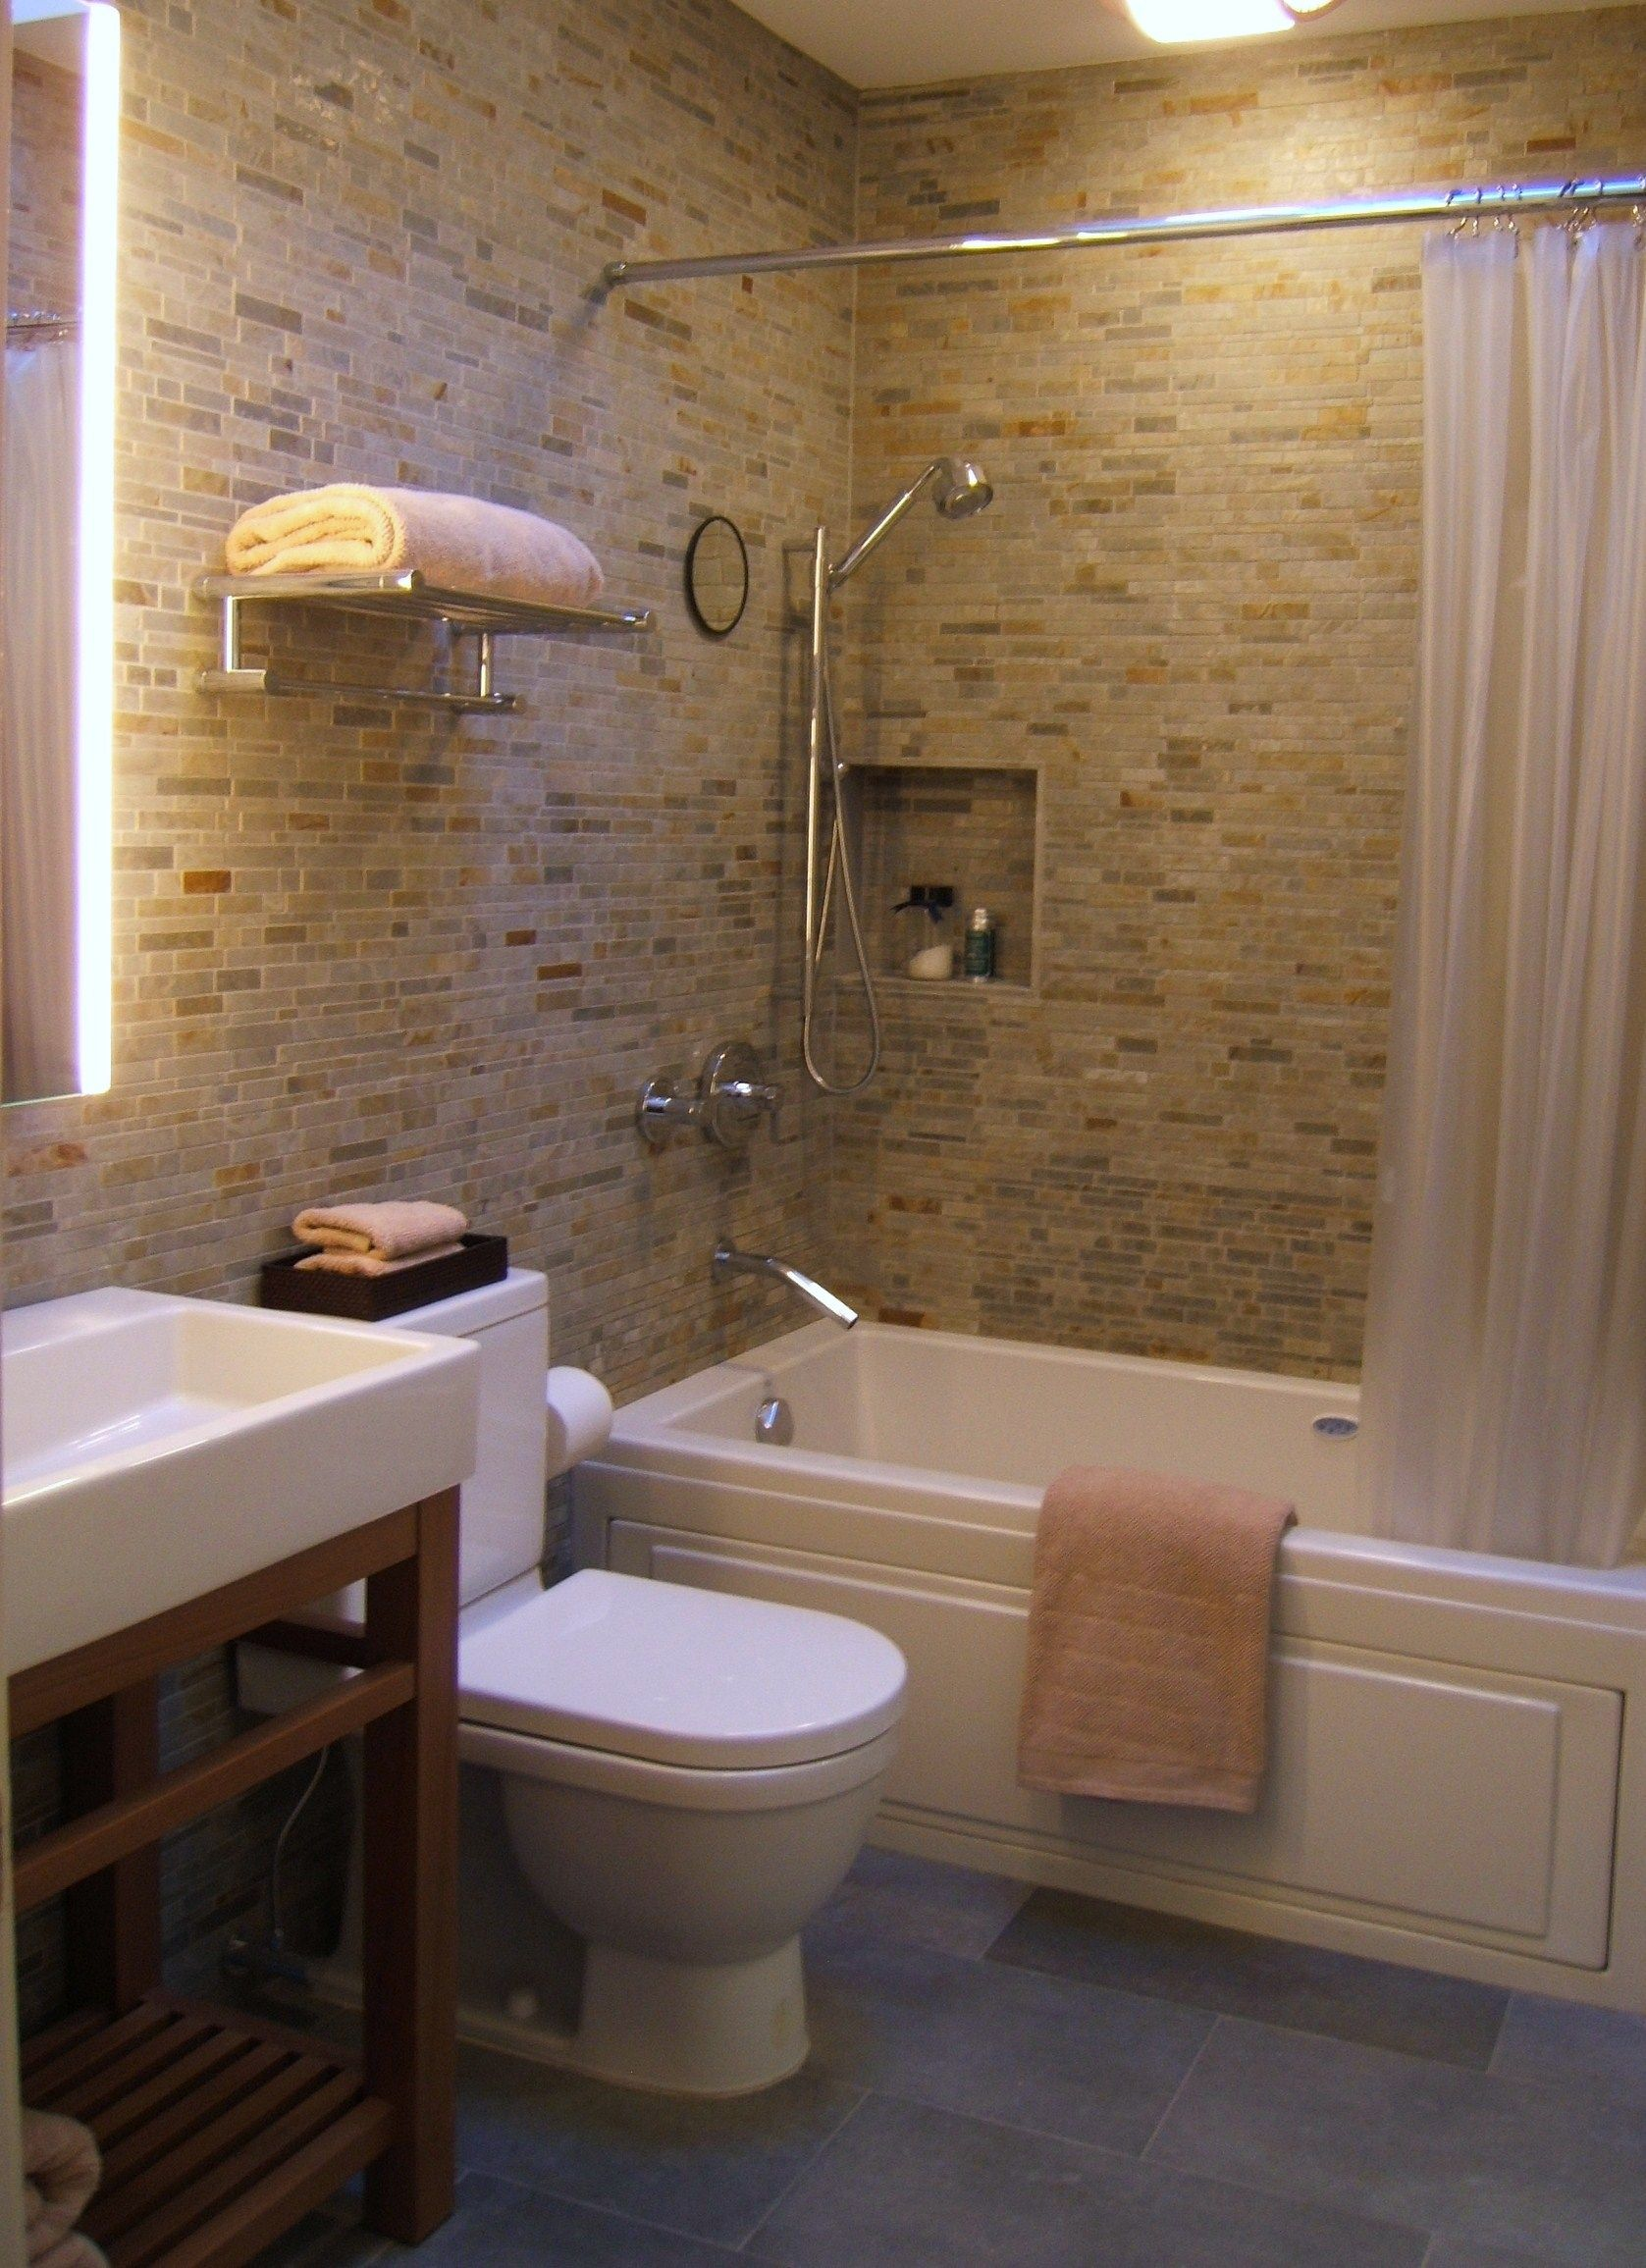 Small bathroom designs south africa small bath for Small bathroom renovations